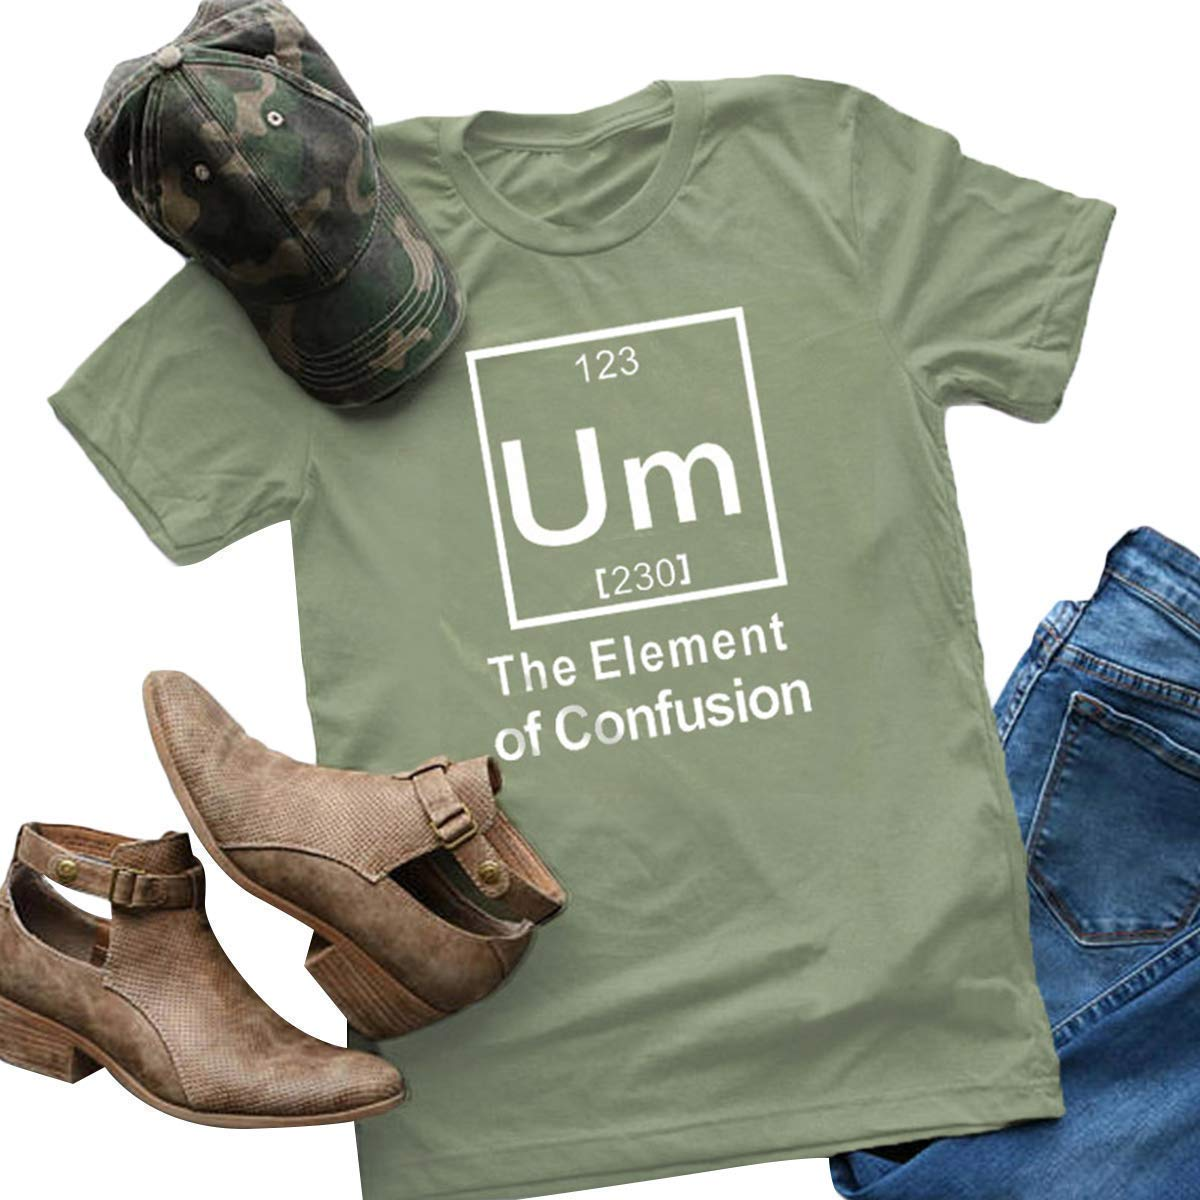 Shejianke Womens Cute Funny Um The Element of Confusion Short Sleeve Graphic Tees T-Shirts Tops